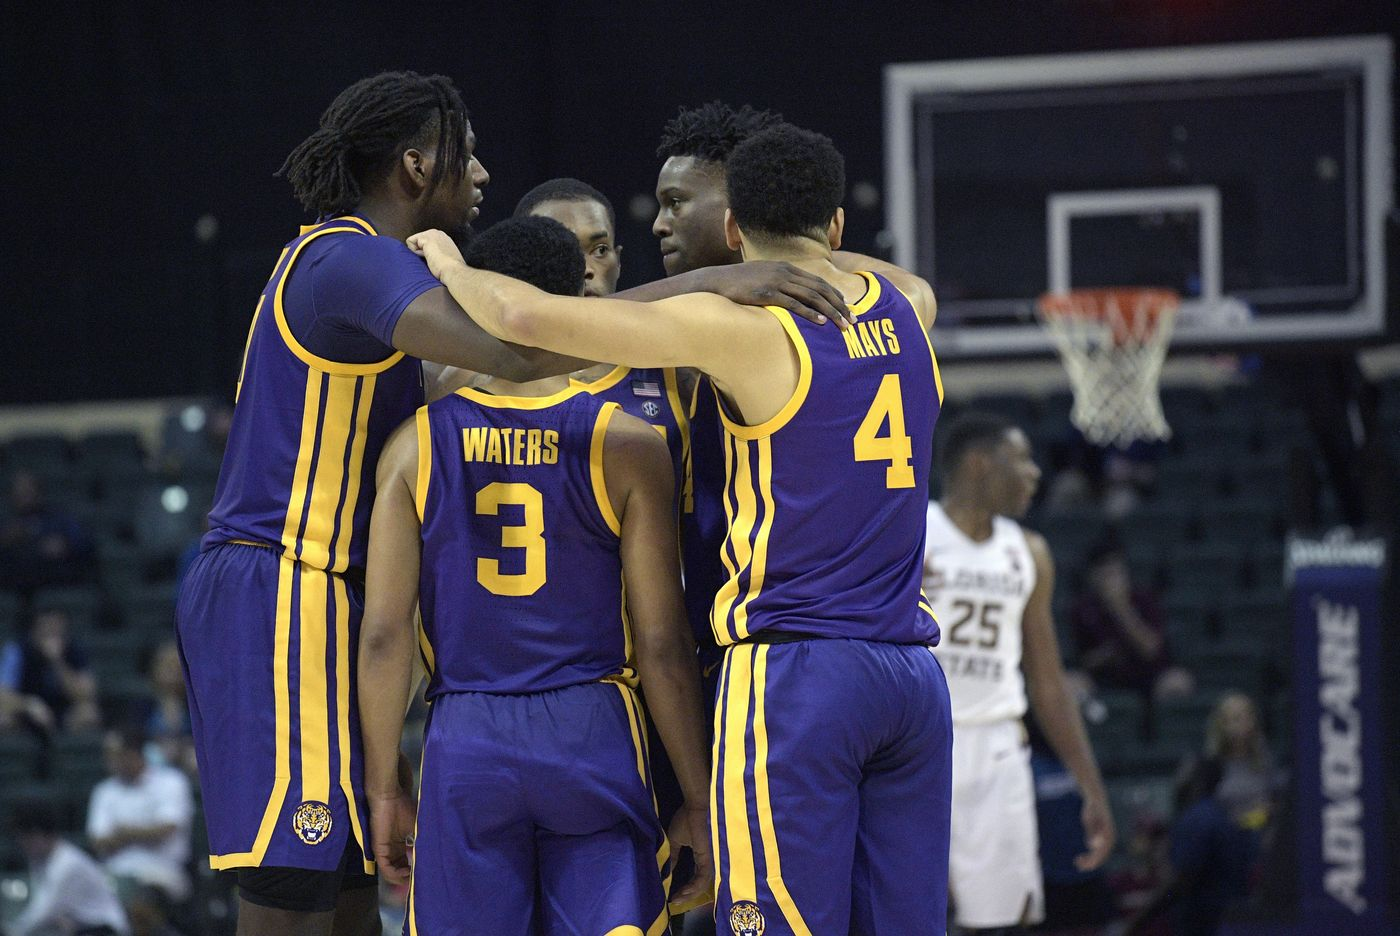 Waters leads No. 19 LSU over Texas A&M, 72-57